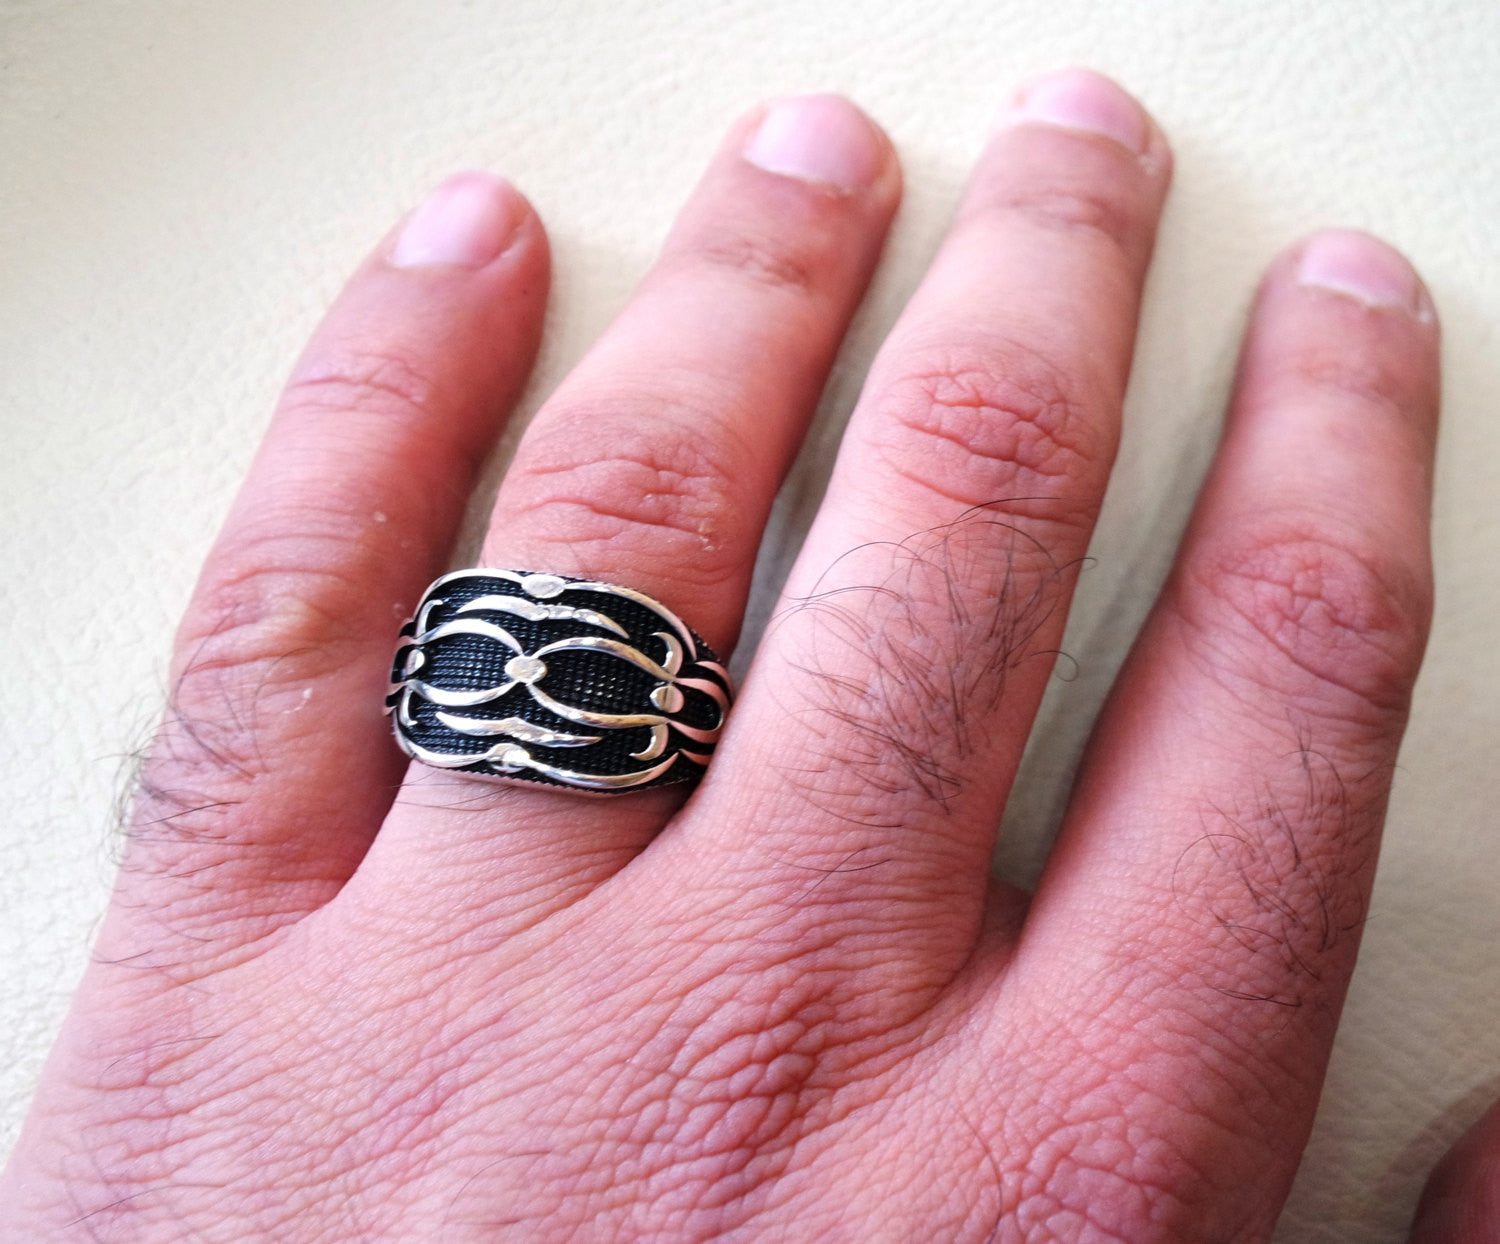 celtic style heavy sterling silver 925 heavy man heavy symbol ring shape any size antique style high quality jewelry